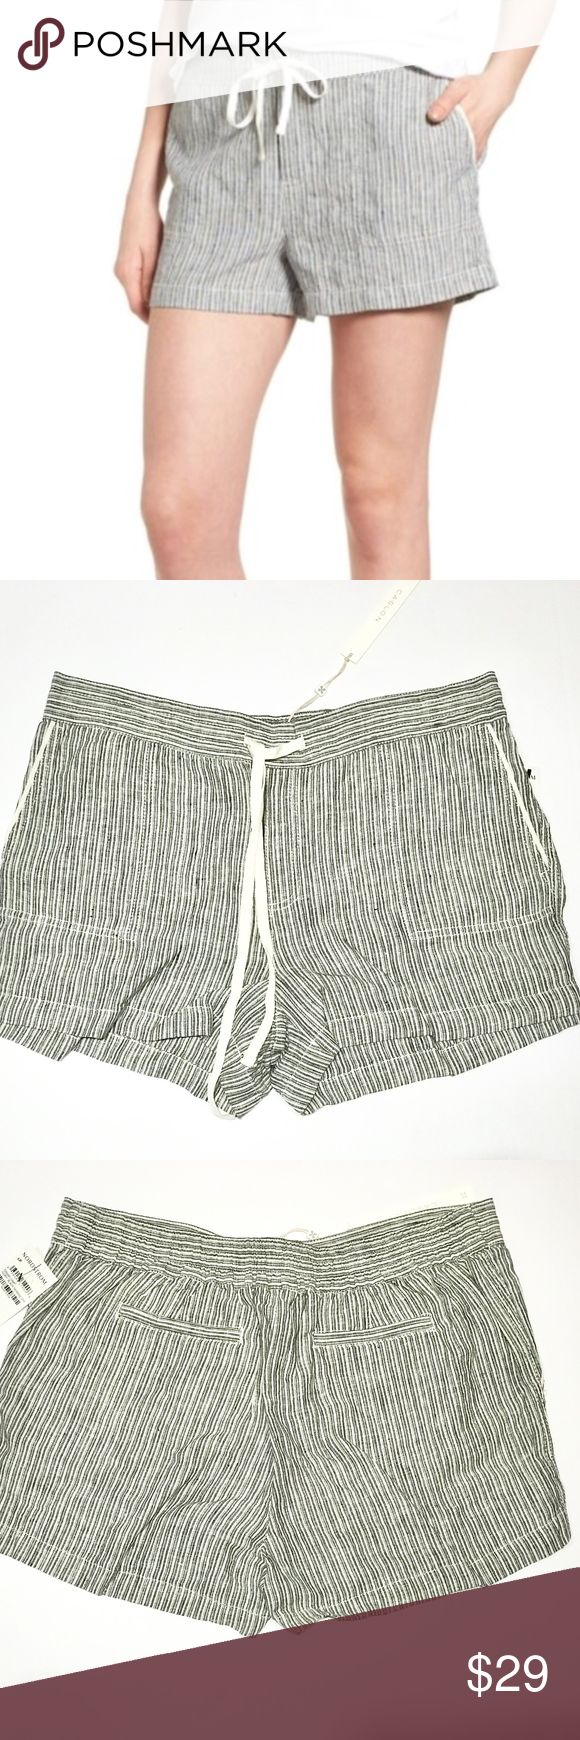 """Caslon 100% Linen Shorts Petite Large A drawstring waist caps off the relaxed ease of linen-woven shorts in an array of geometric prints in shades of black and ivory white. Petite sizes best fit women 5'4"""" & under. - Petite: 34"""" waist; 3"""" inseam; 24"""" leg opening; 11"""" rise; Size: Petite Large - Pull-on style - Front slant pockets; back welt pockets - 100% linen - Machine wash cold, tumble dry low Caslon Shorts"""